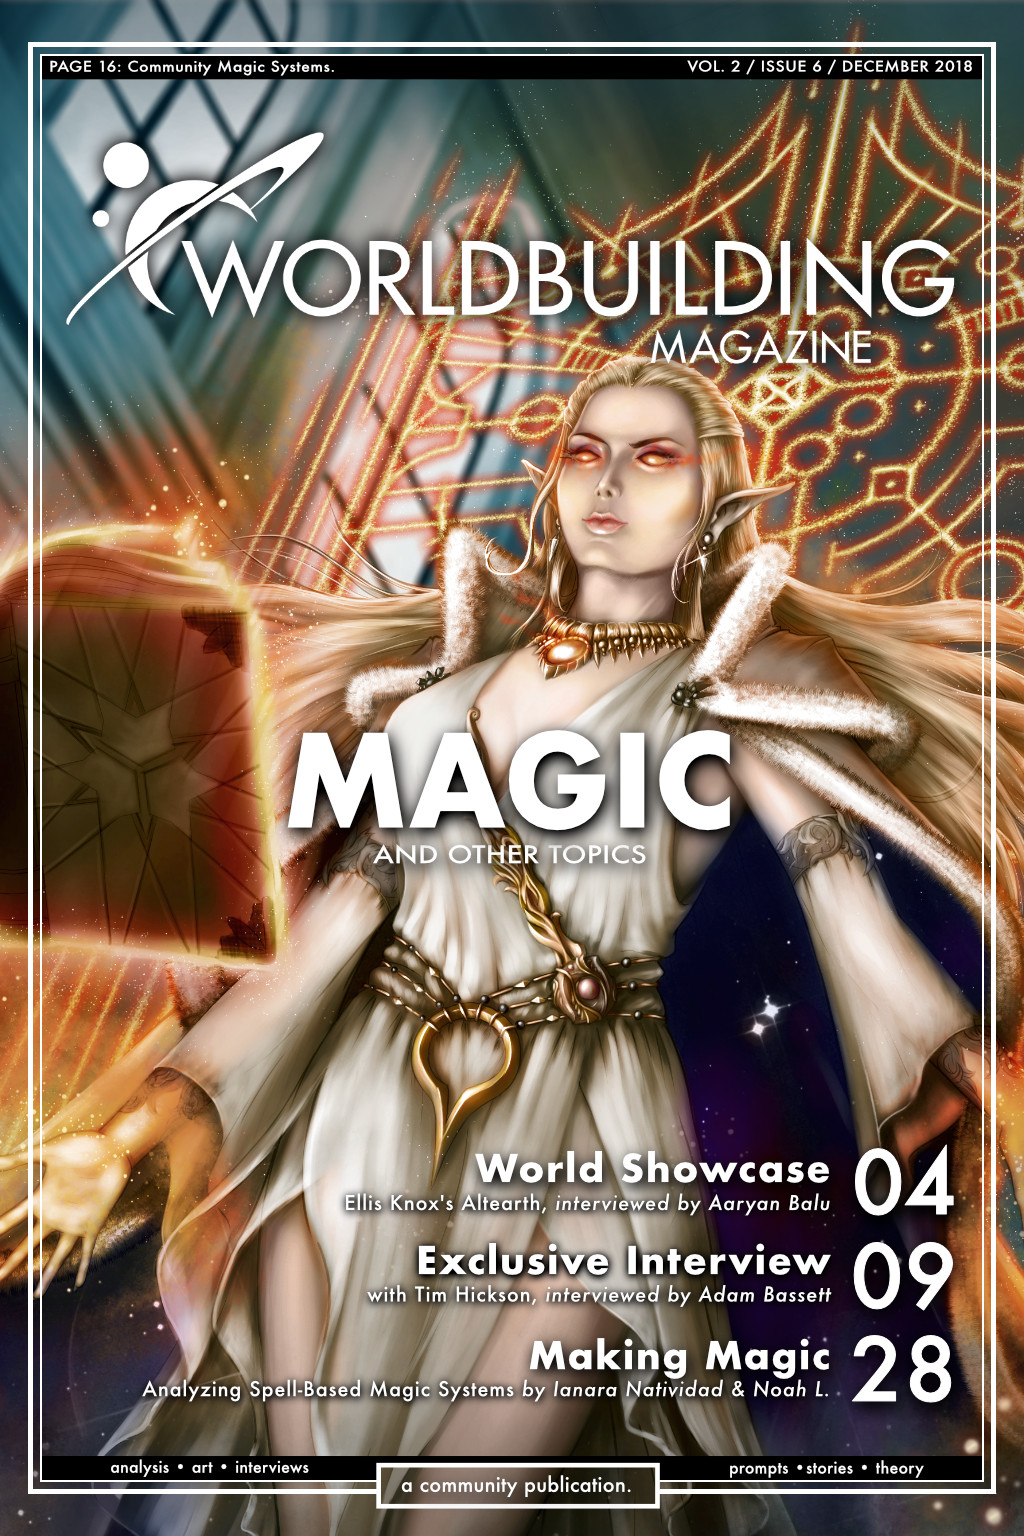 Worldbuilding Magazine Volume 2, Issue 6: Magic